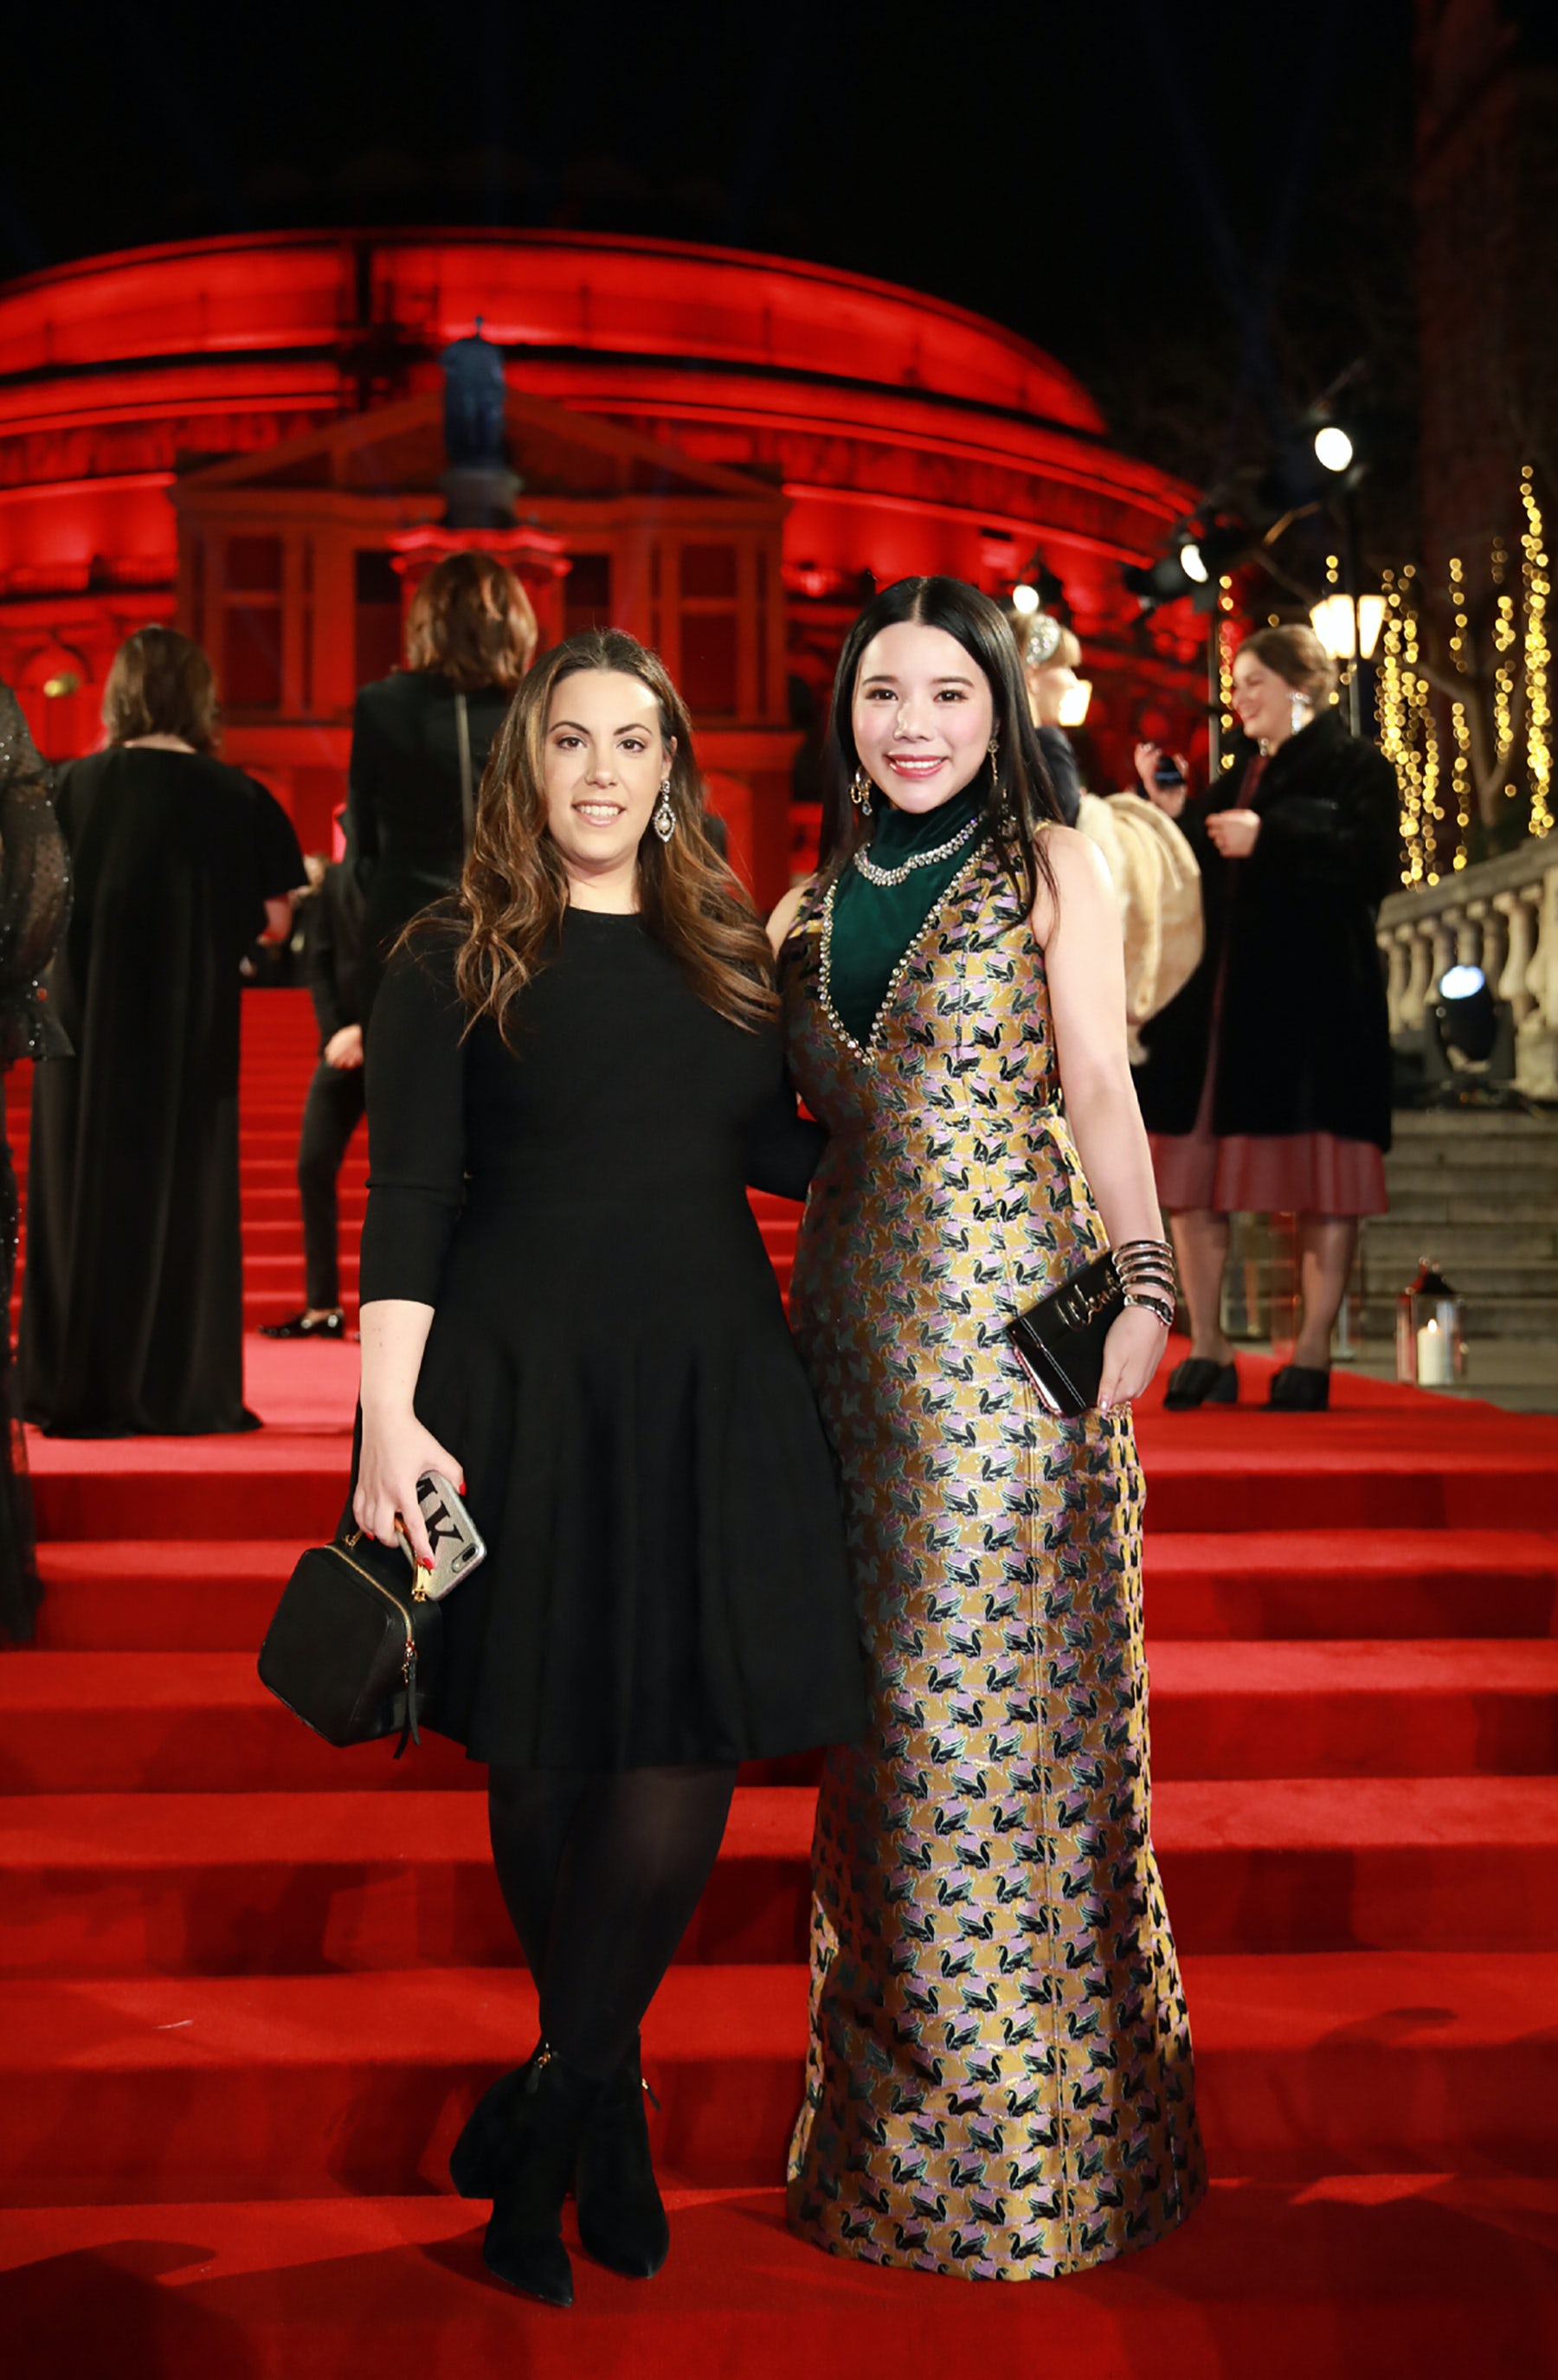 Mary Katrantzou Raises Investment to Boost Business in China